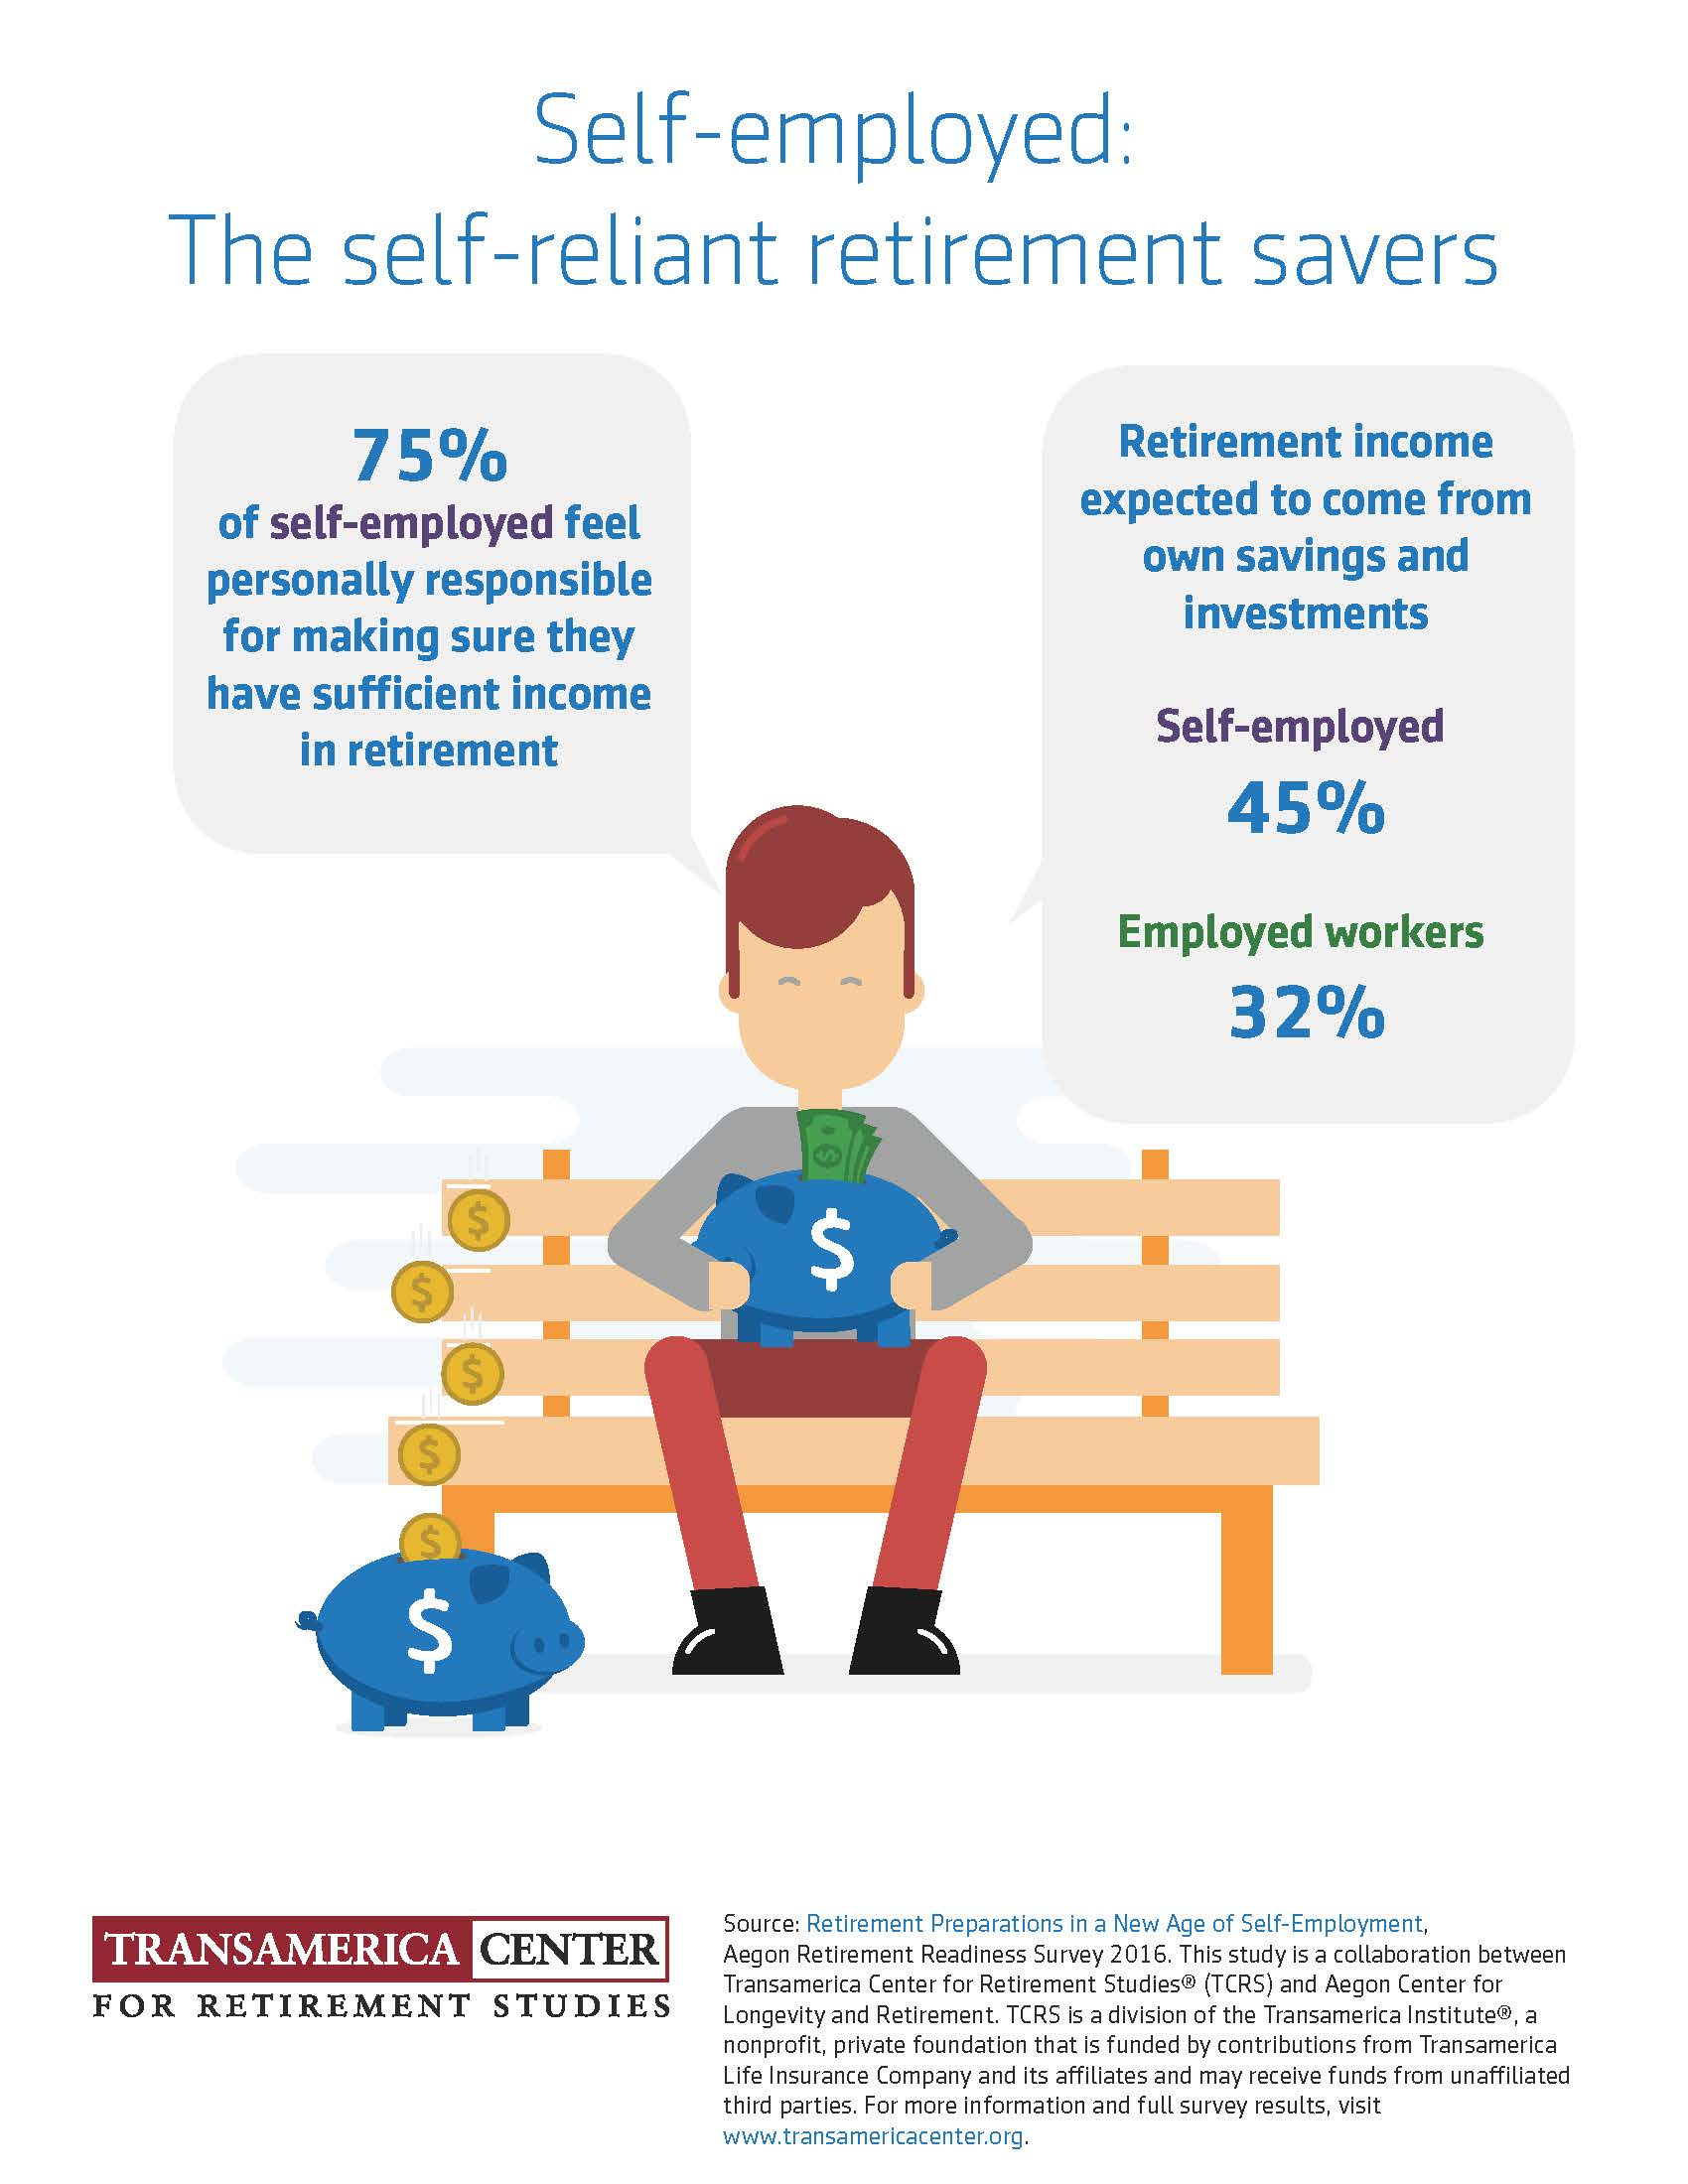 TCRS2017_I_SelfEmployed_Retirement_Savers